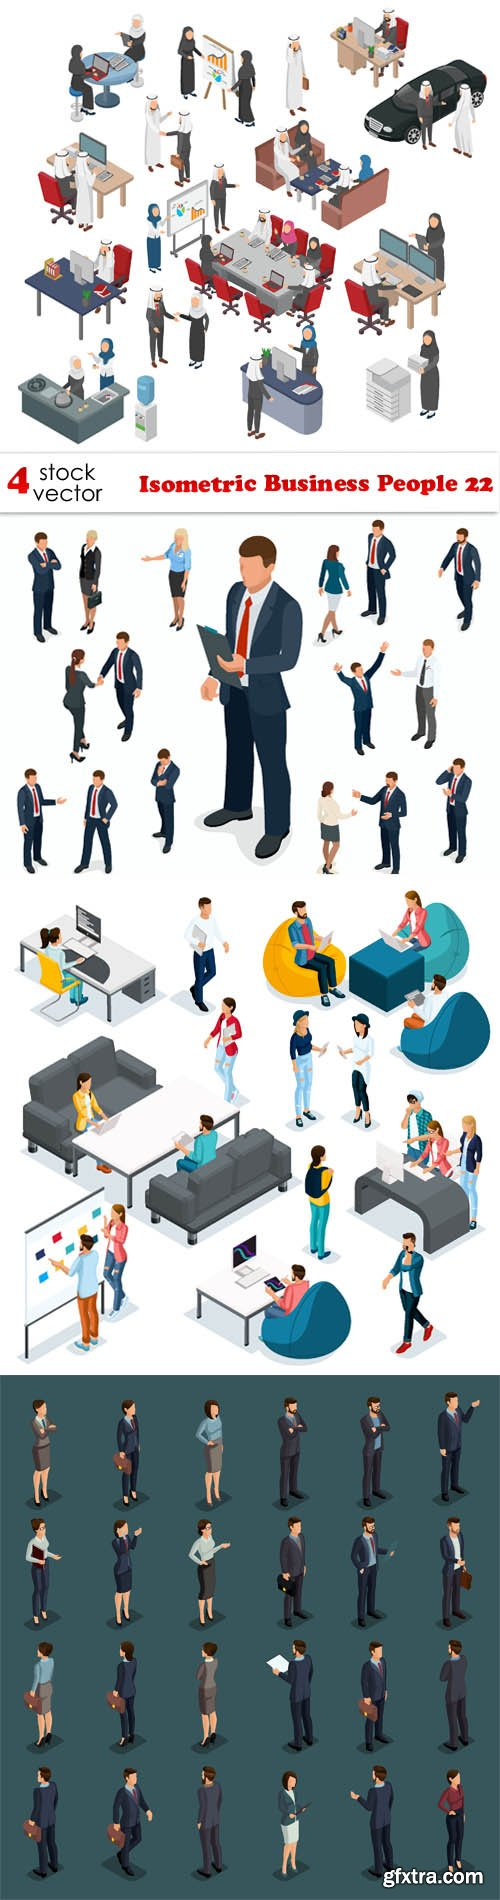 Vectors - Isometric Business People 22